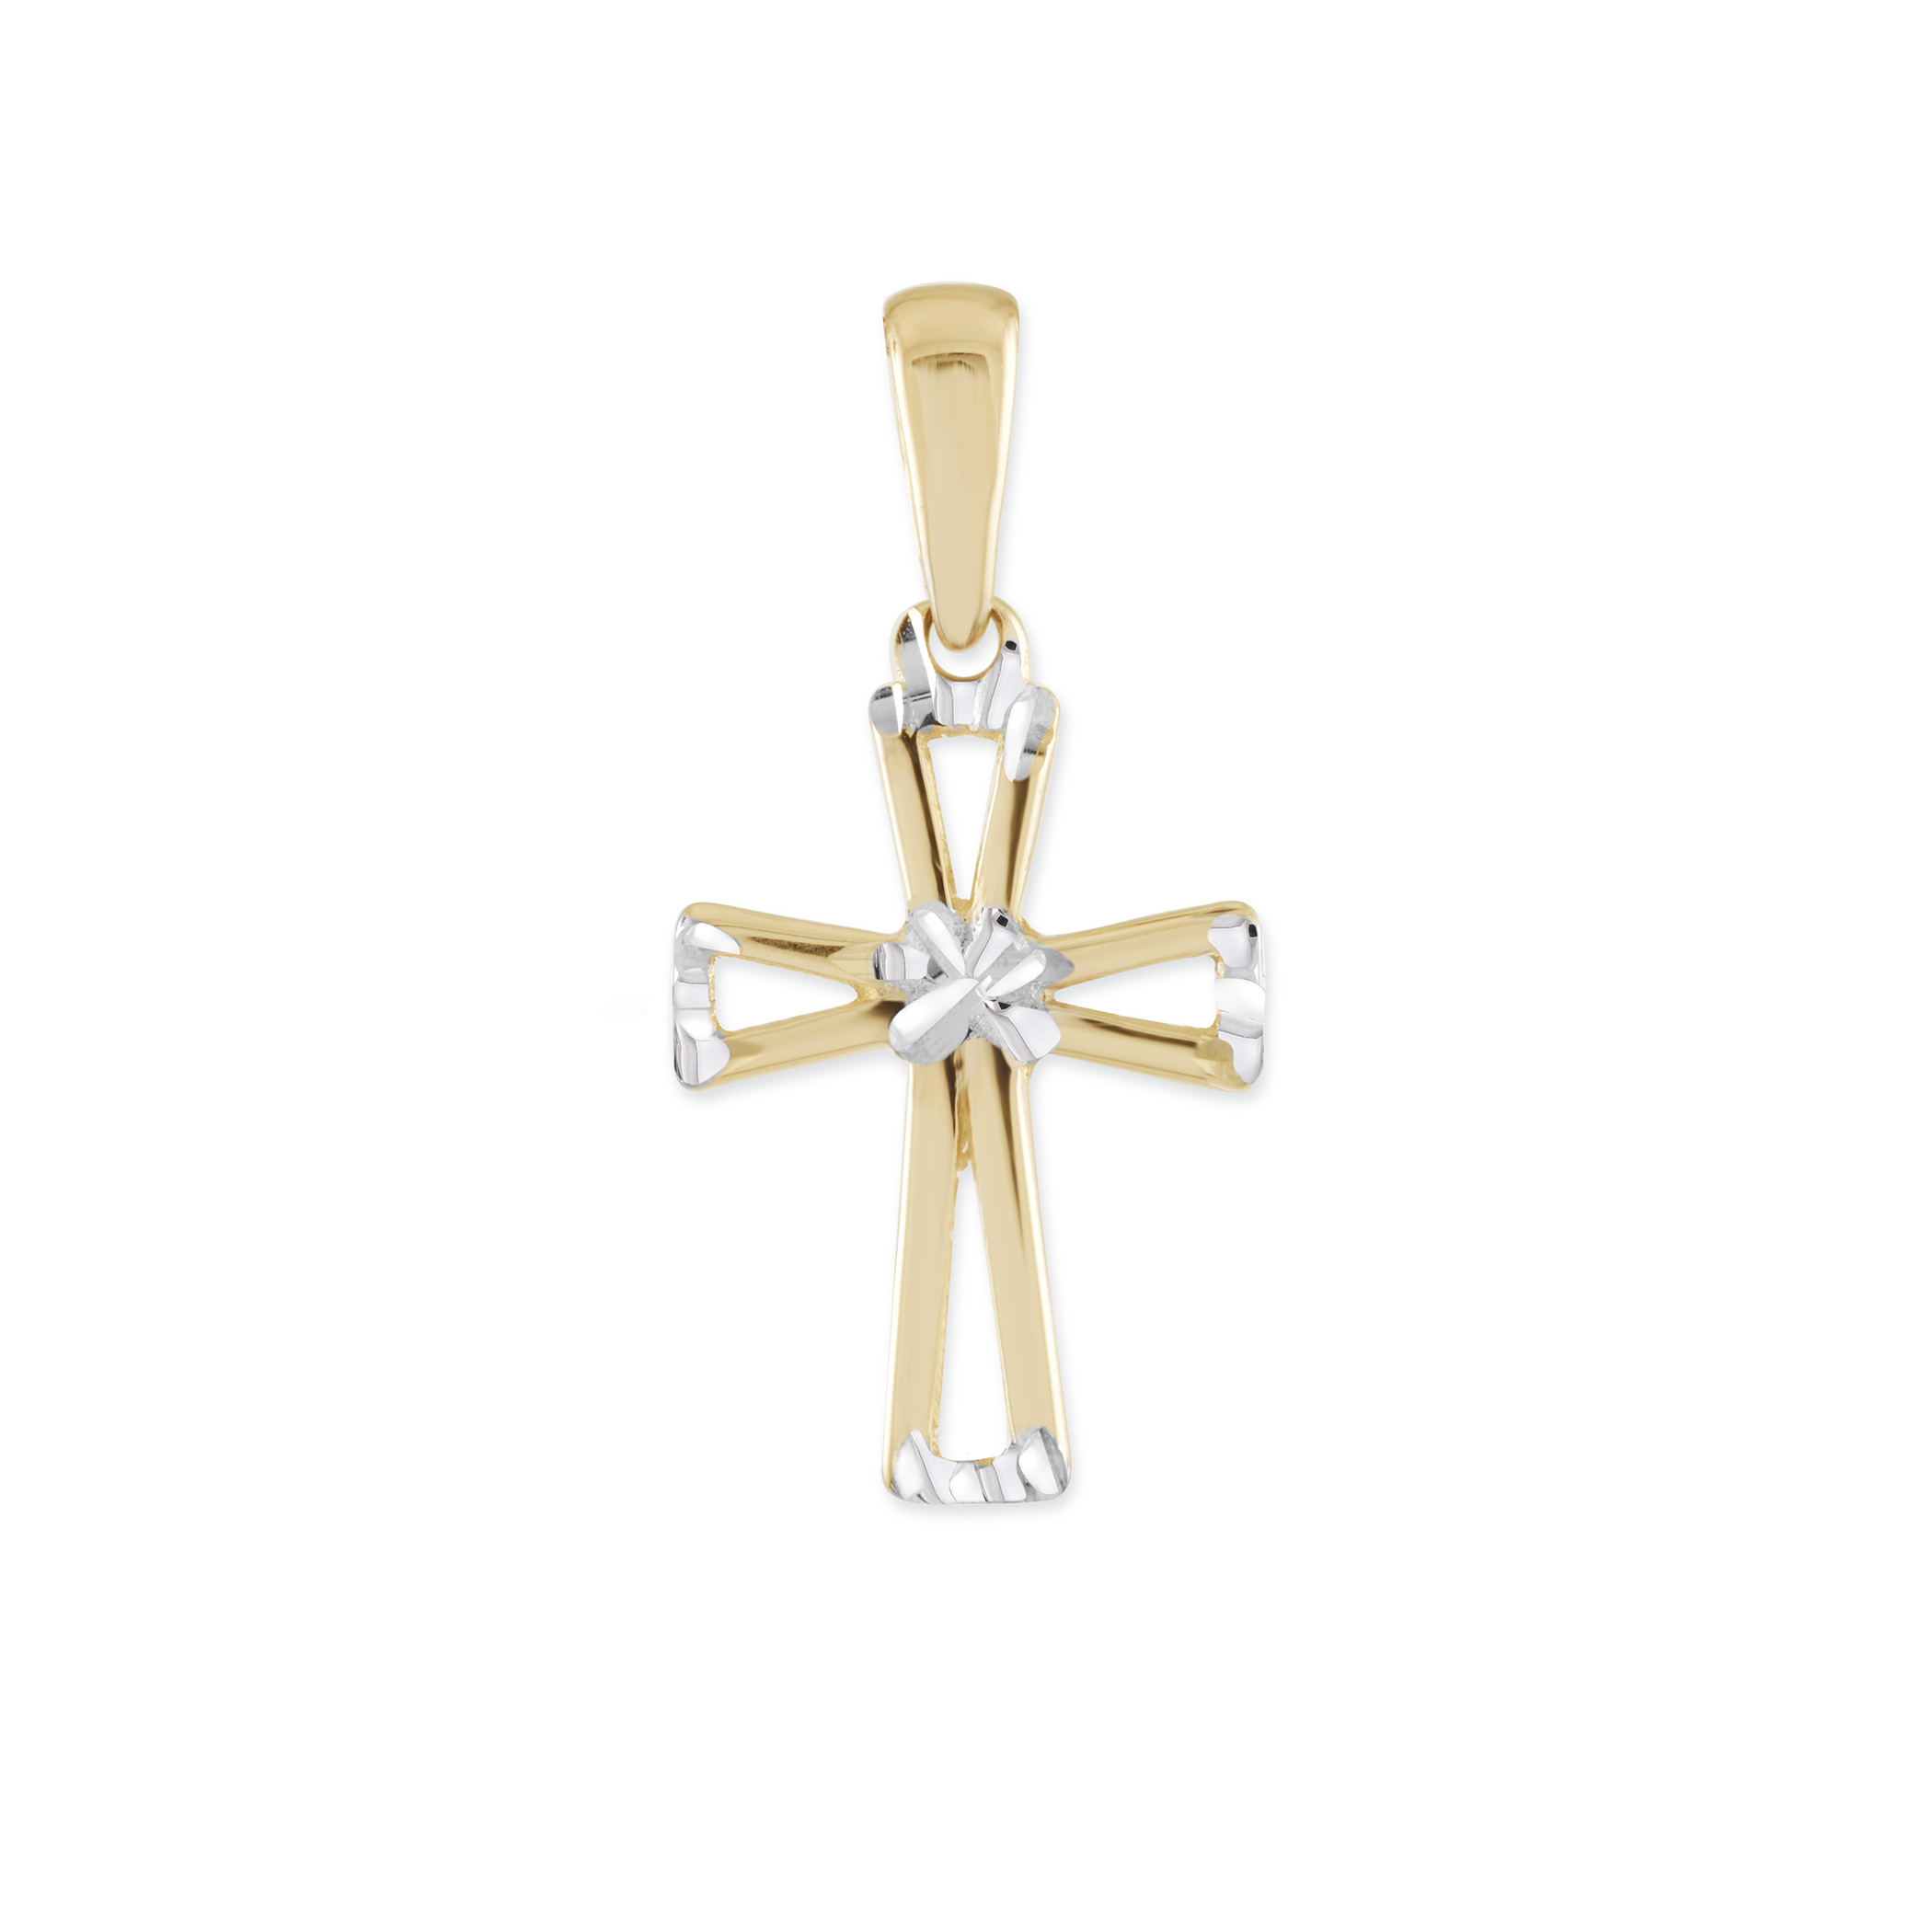 Cross pendant for children - 10K 2-tone Gold (yellow and white)